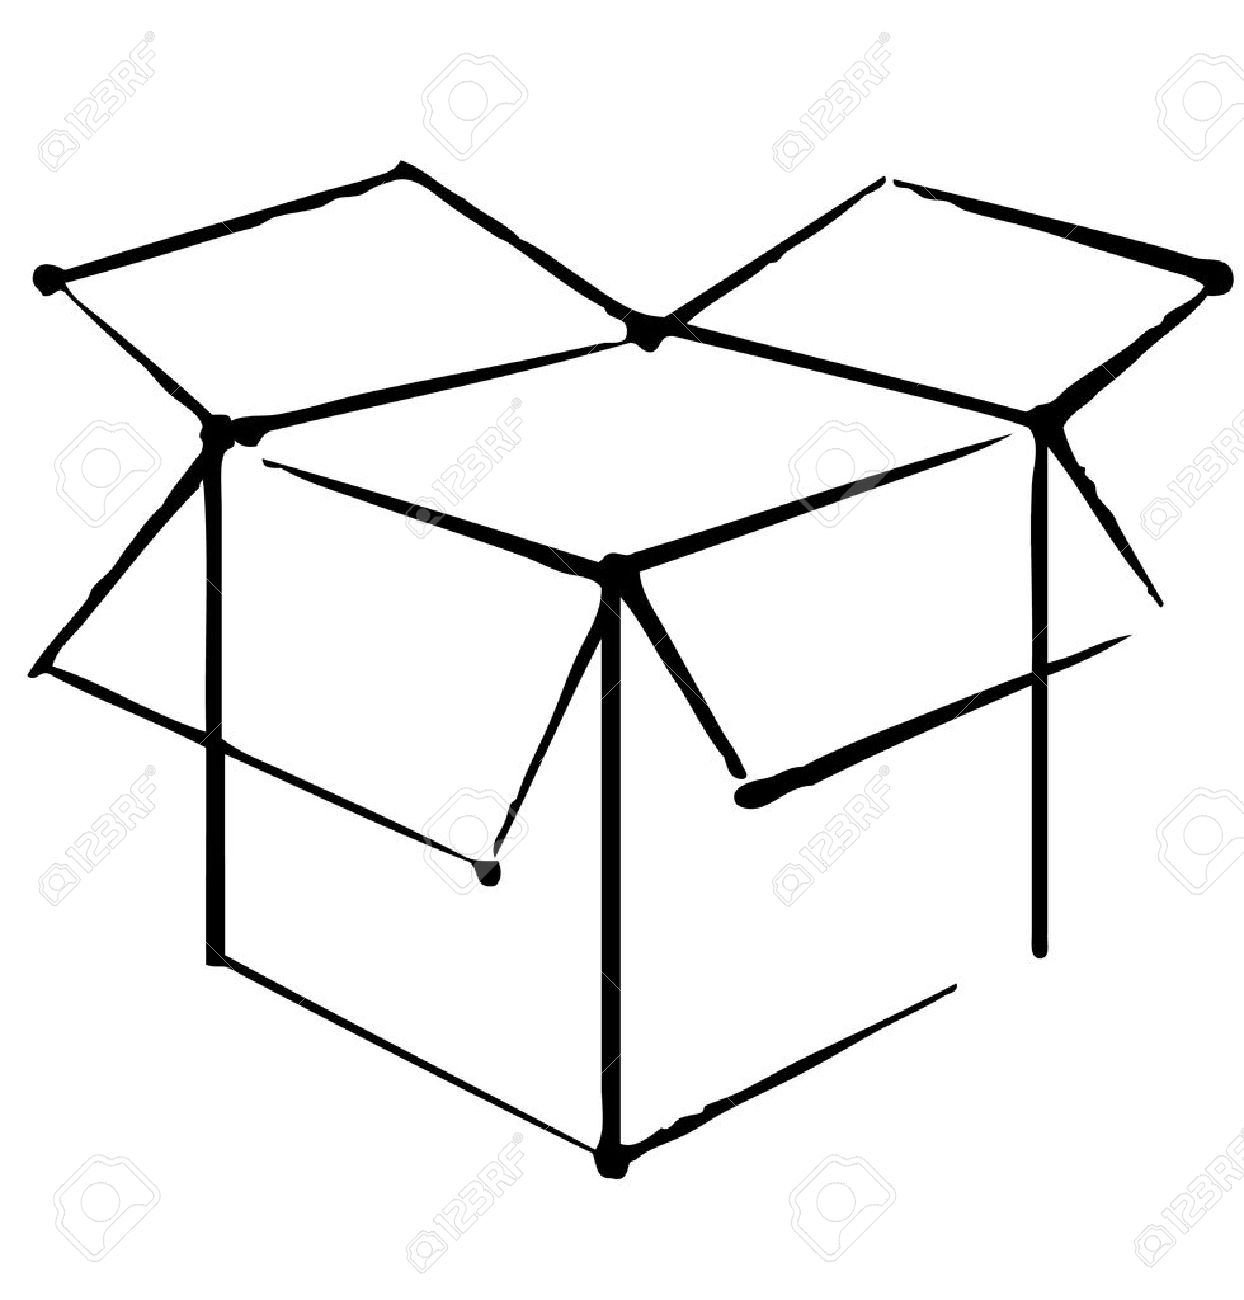 Box icon Stock Vector - 19141797